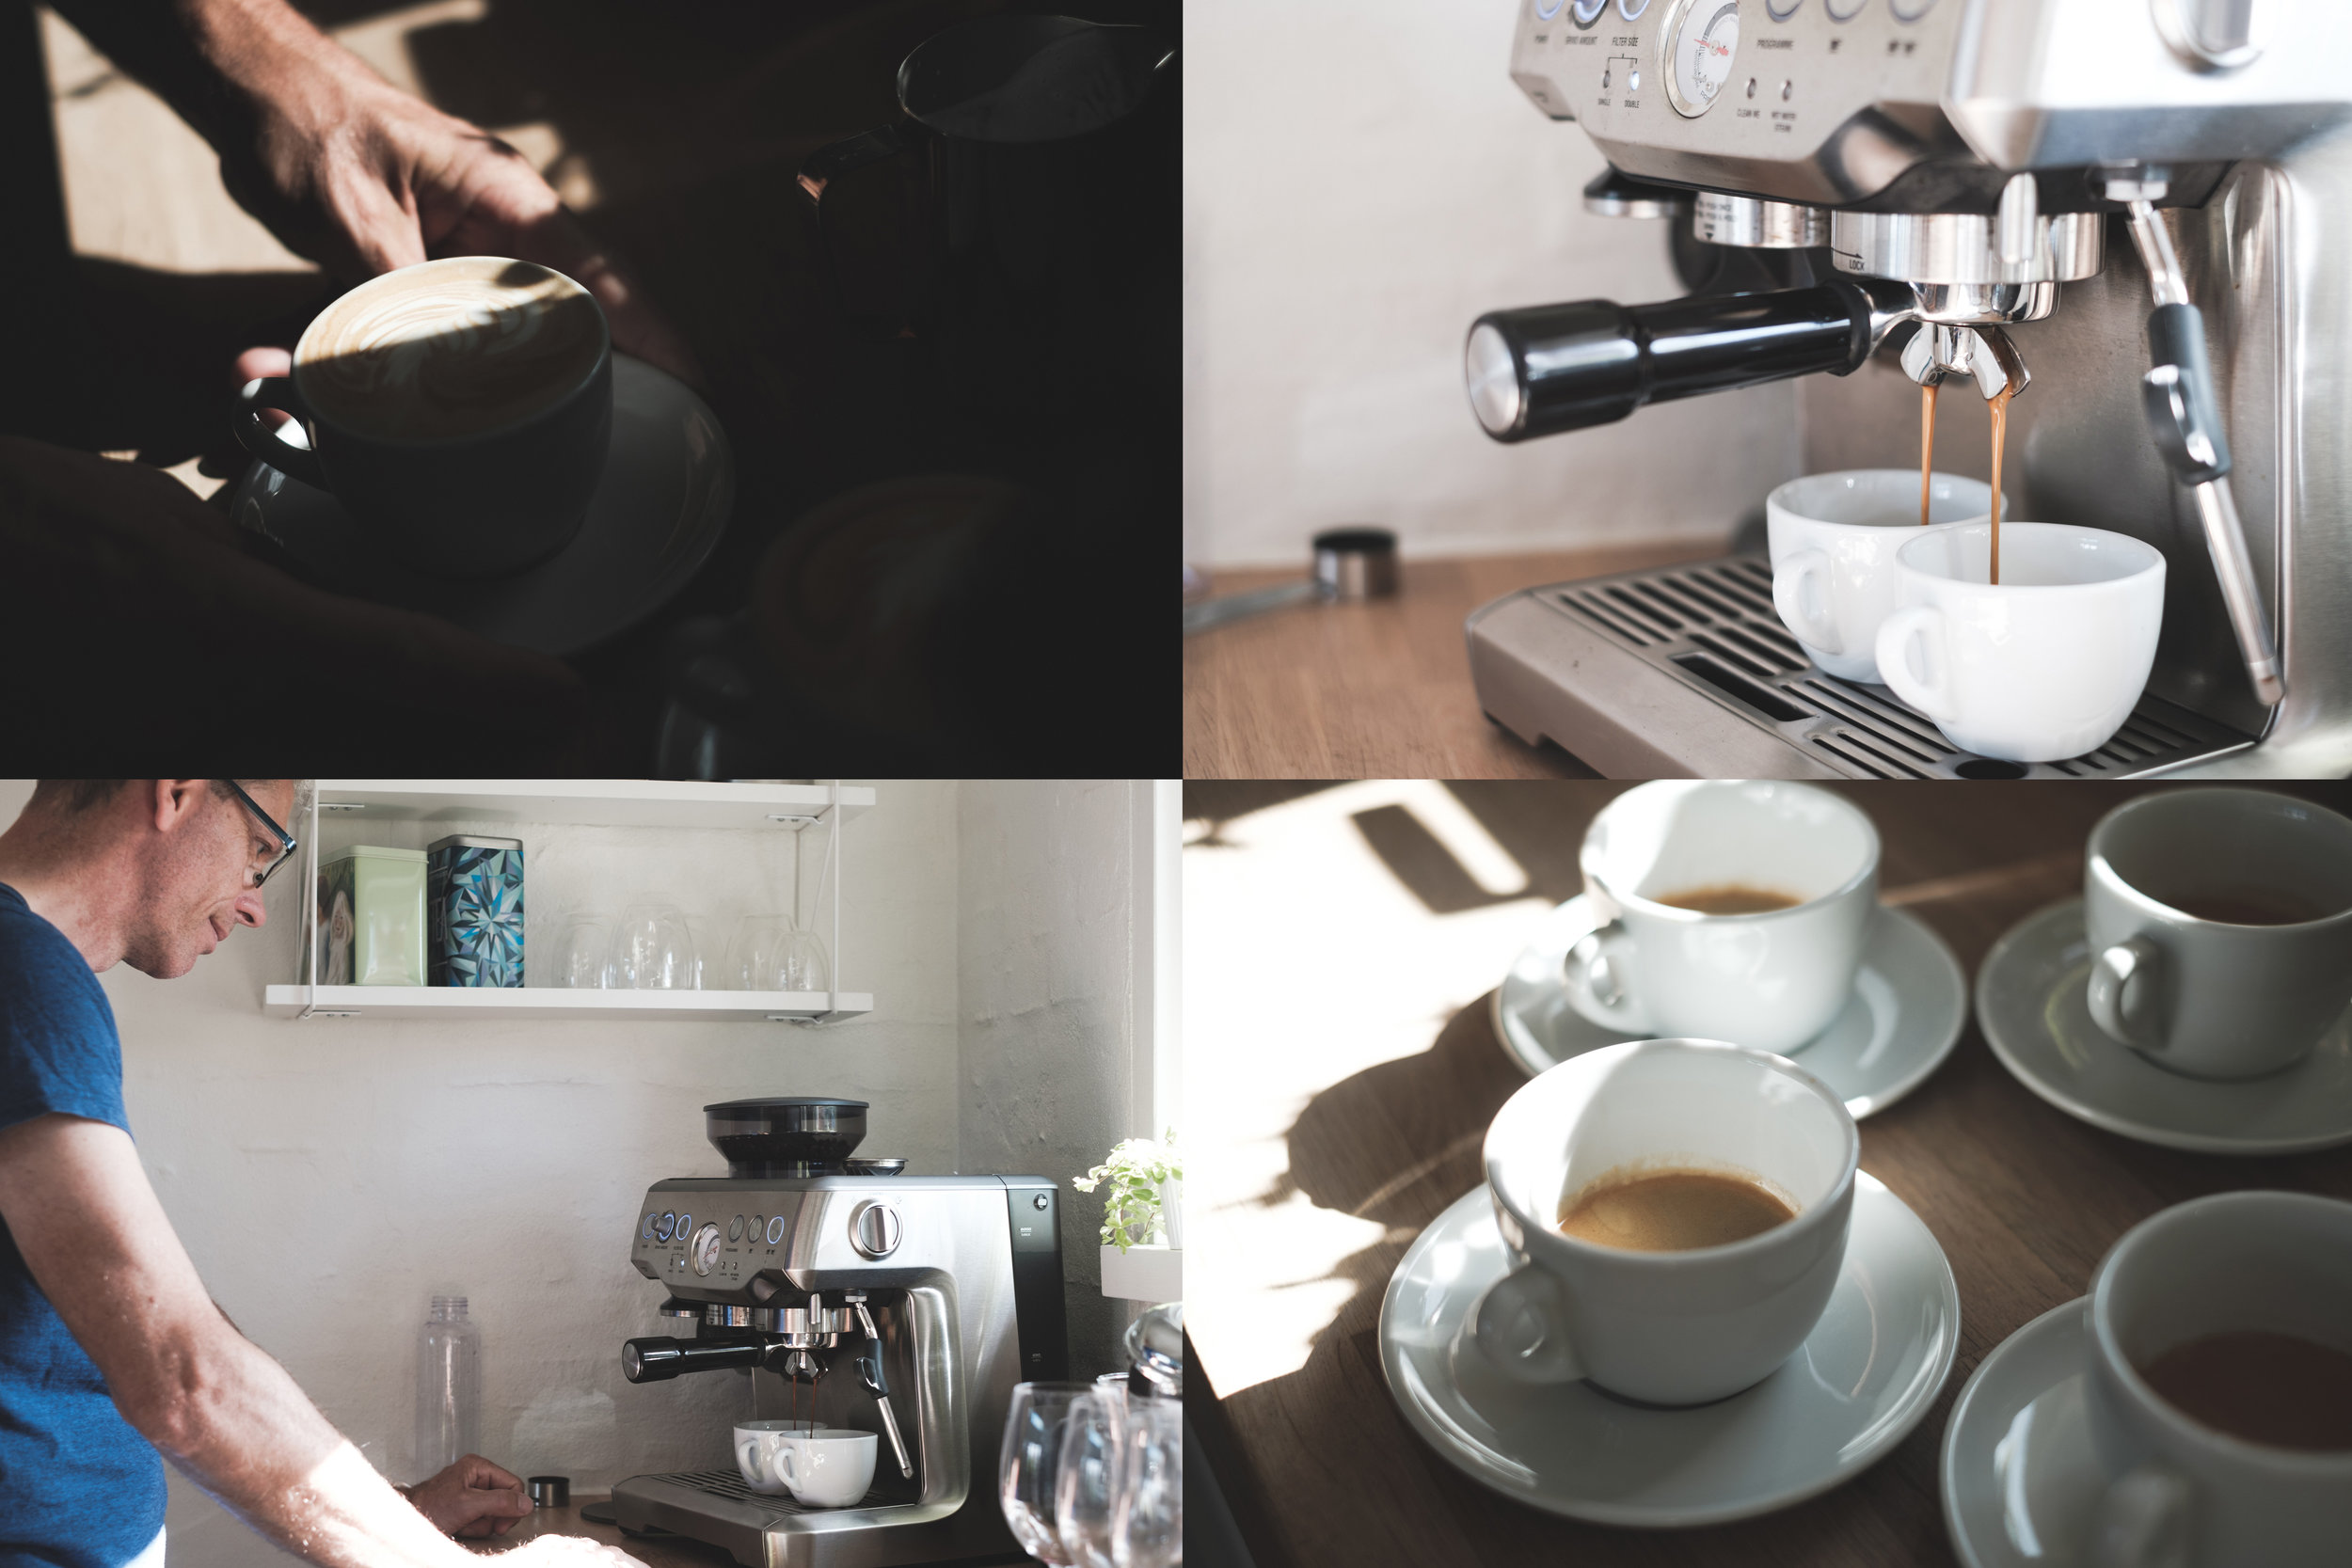 Master Barista, Kristian (Simon's dad), roasts his own coffee beans and serves wickedly good cappuccinos, lattes, and americanos